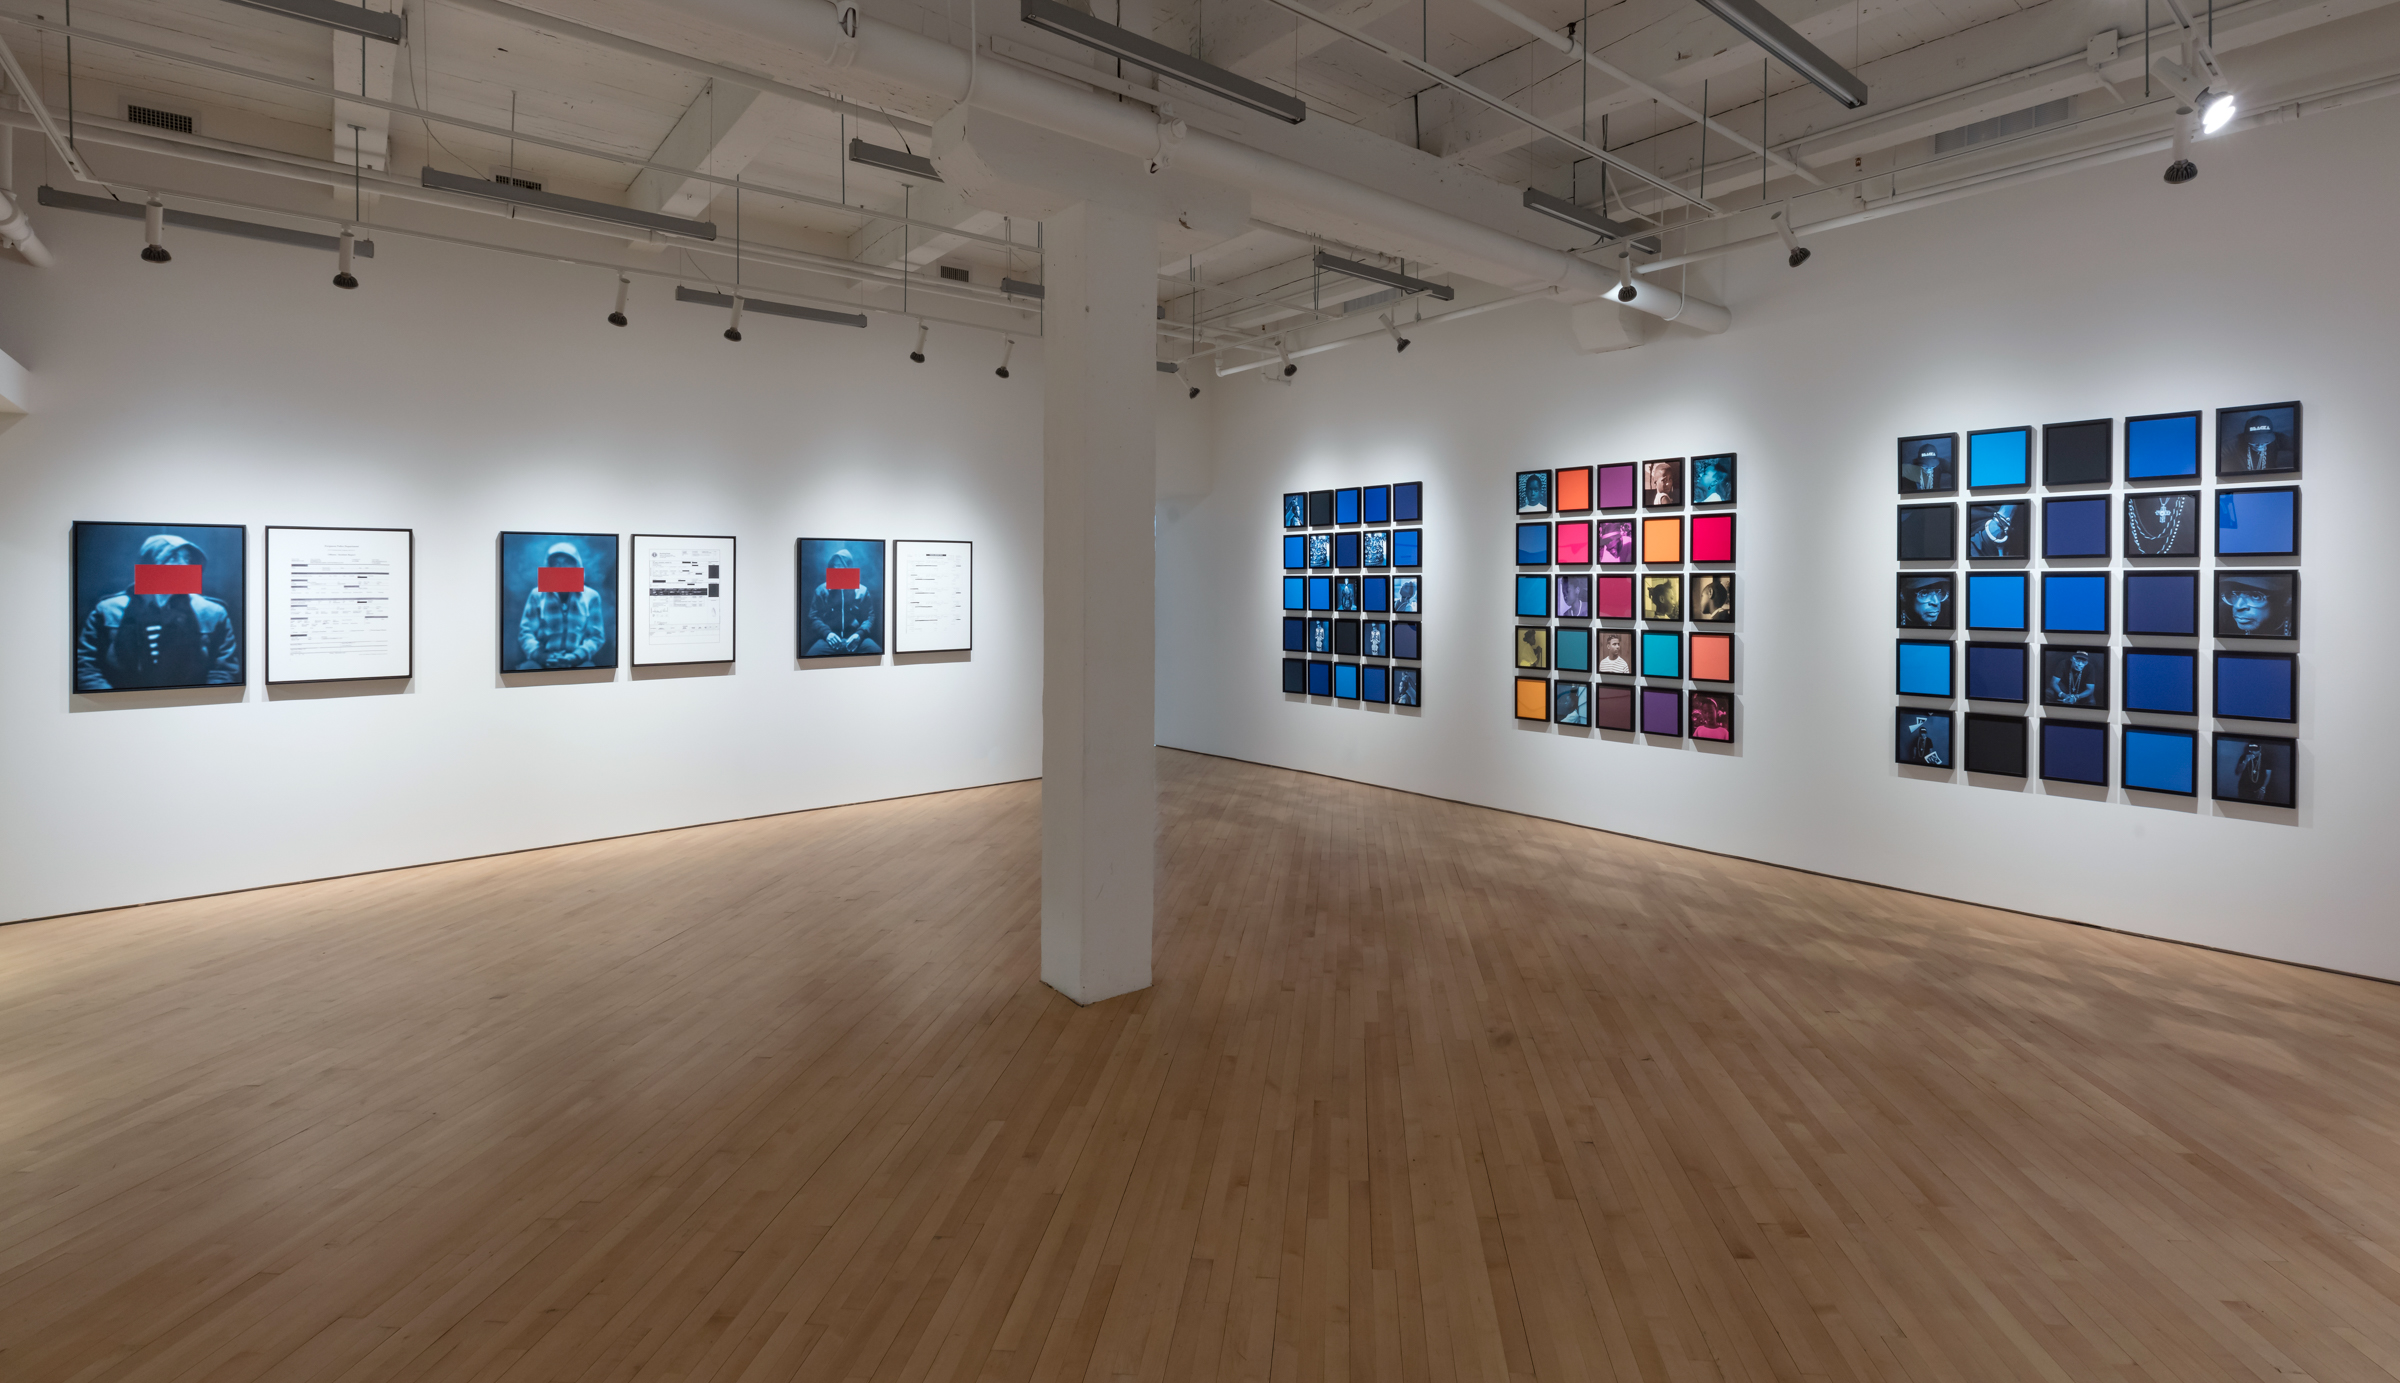 Carrie Mae Weems, Installation view of Blending the Blues, CONTACT Gallery, Toronto, May 1 - July 27, 2019. Photo: Toni Hafkenscheid. Courtesy CONTACT, the artist, and Jack Shainman Gallery, New York, NY.